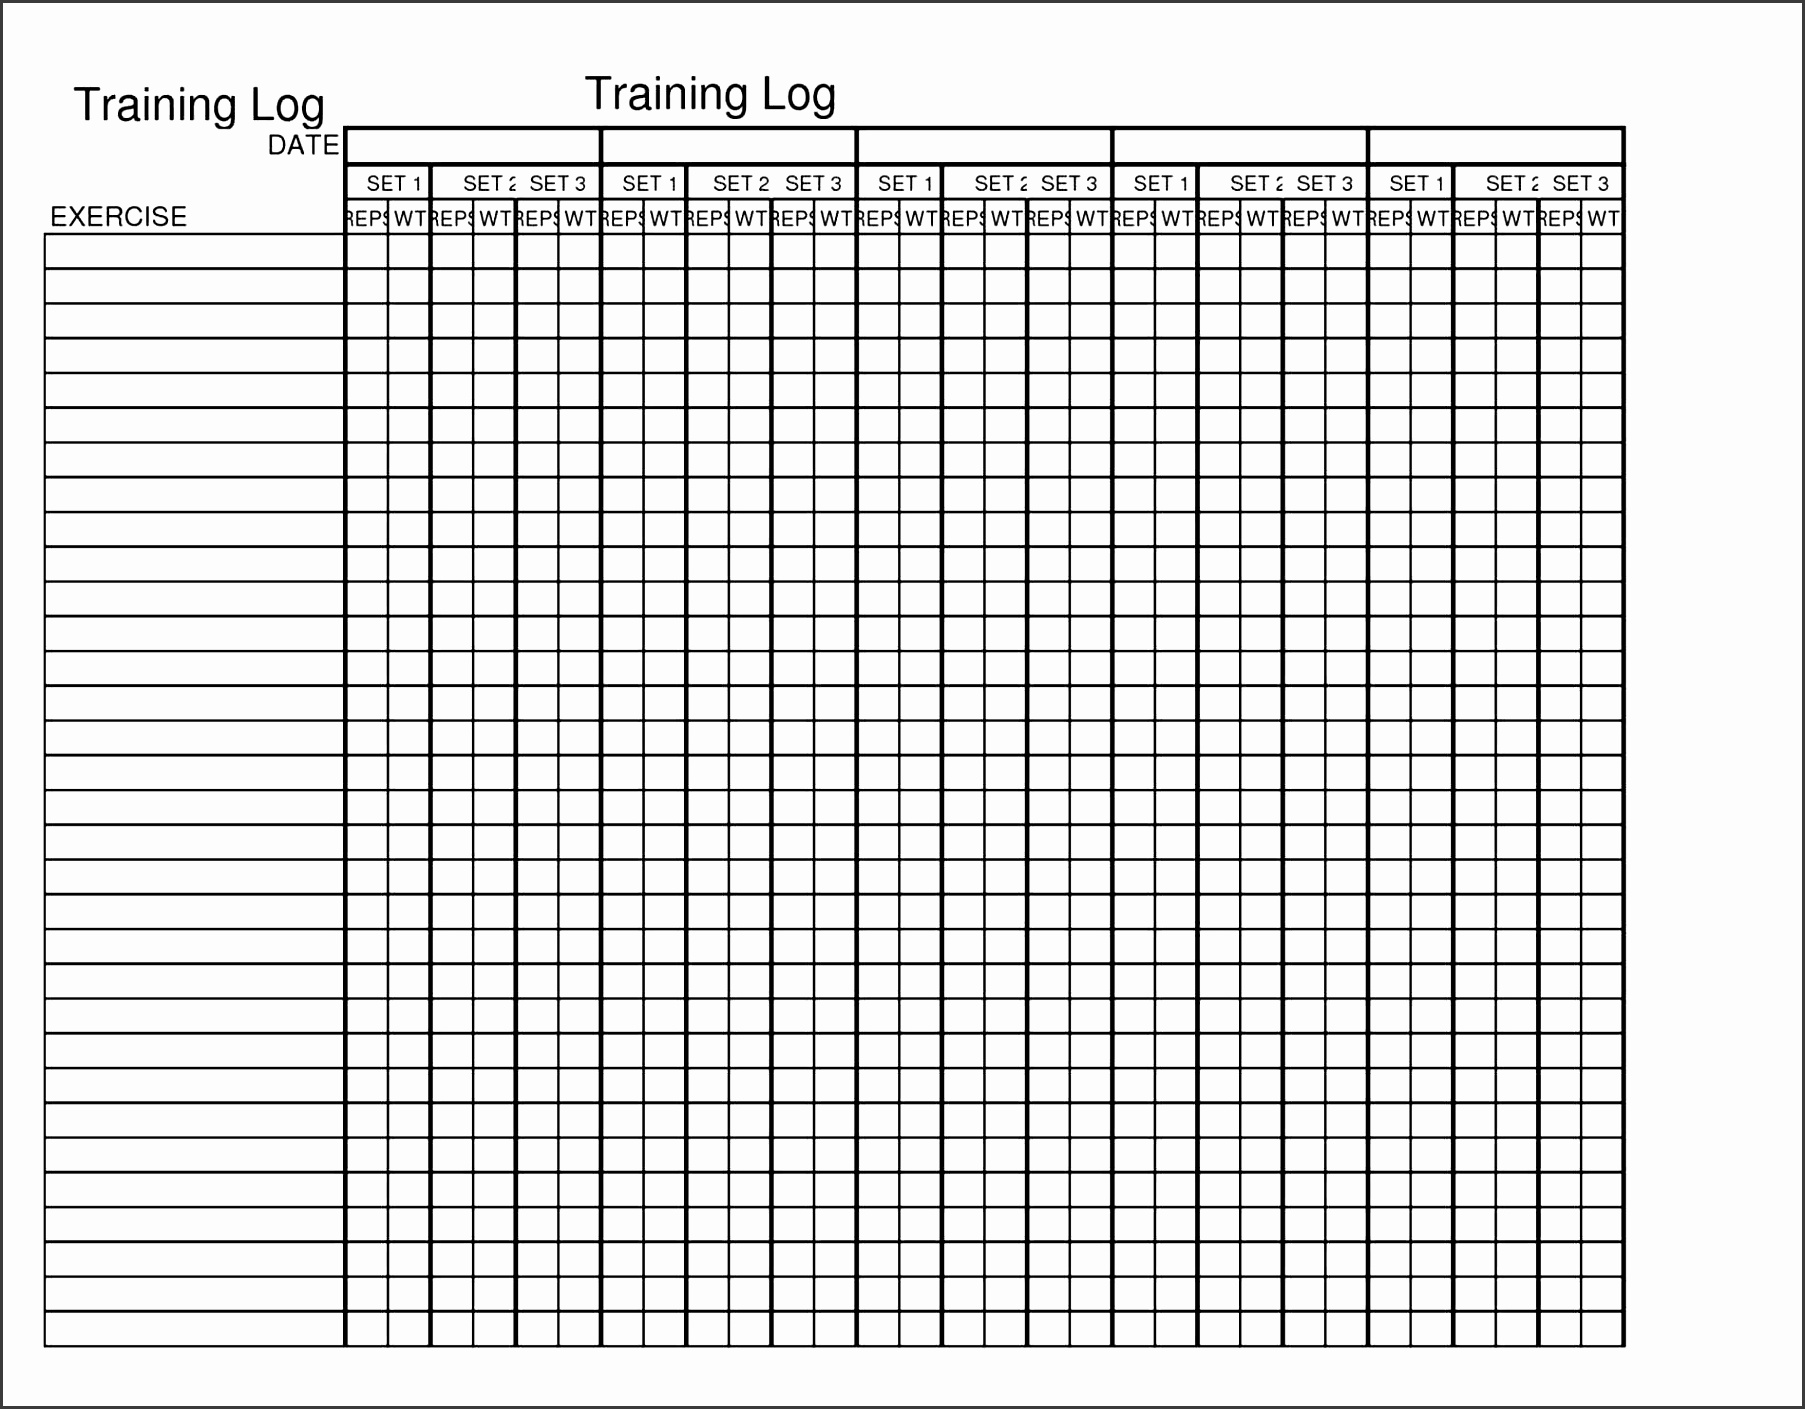 free expense report smartsheet free excel call log template expense report templates smartsheet teacher phone log